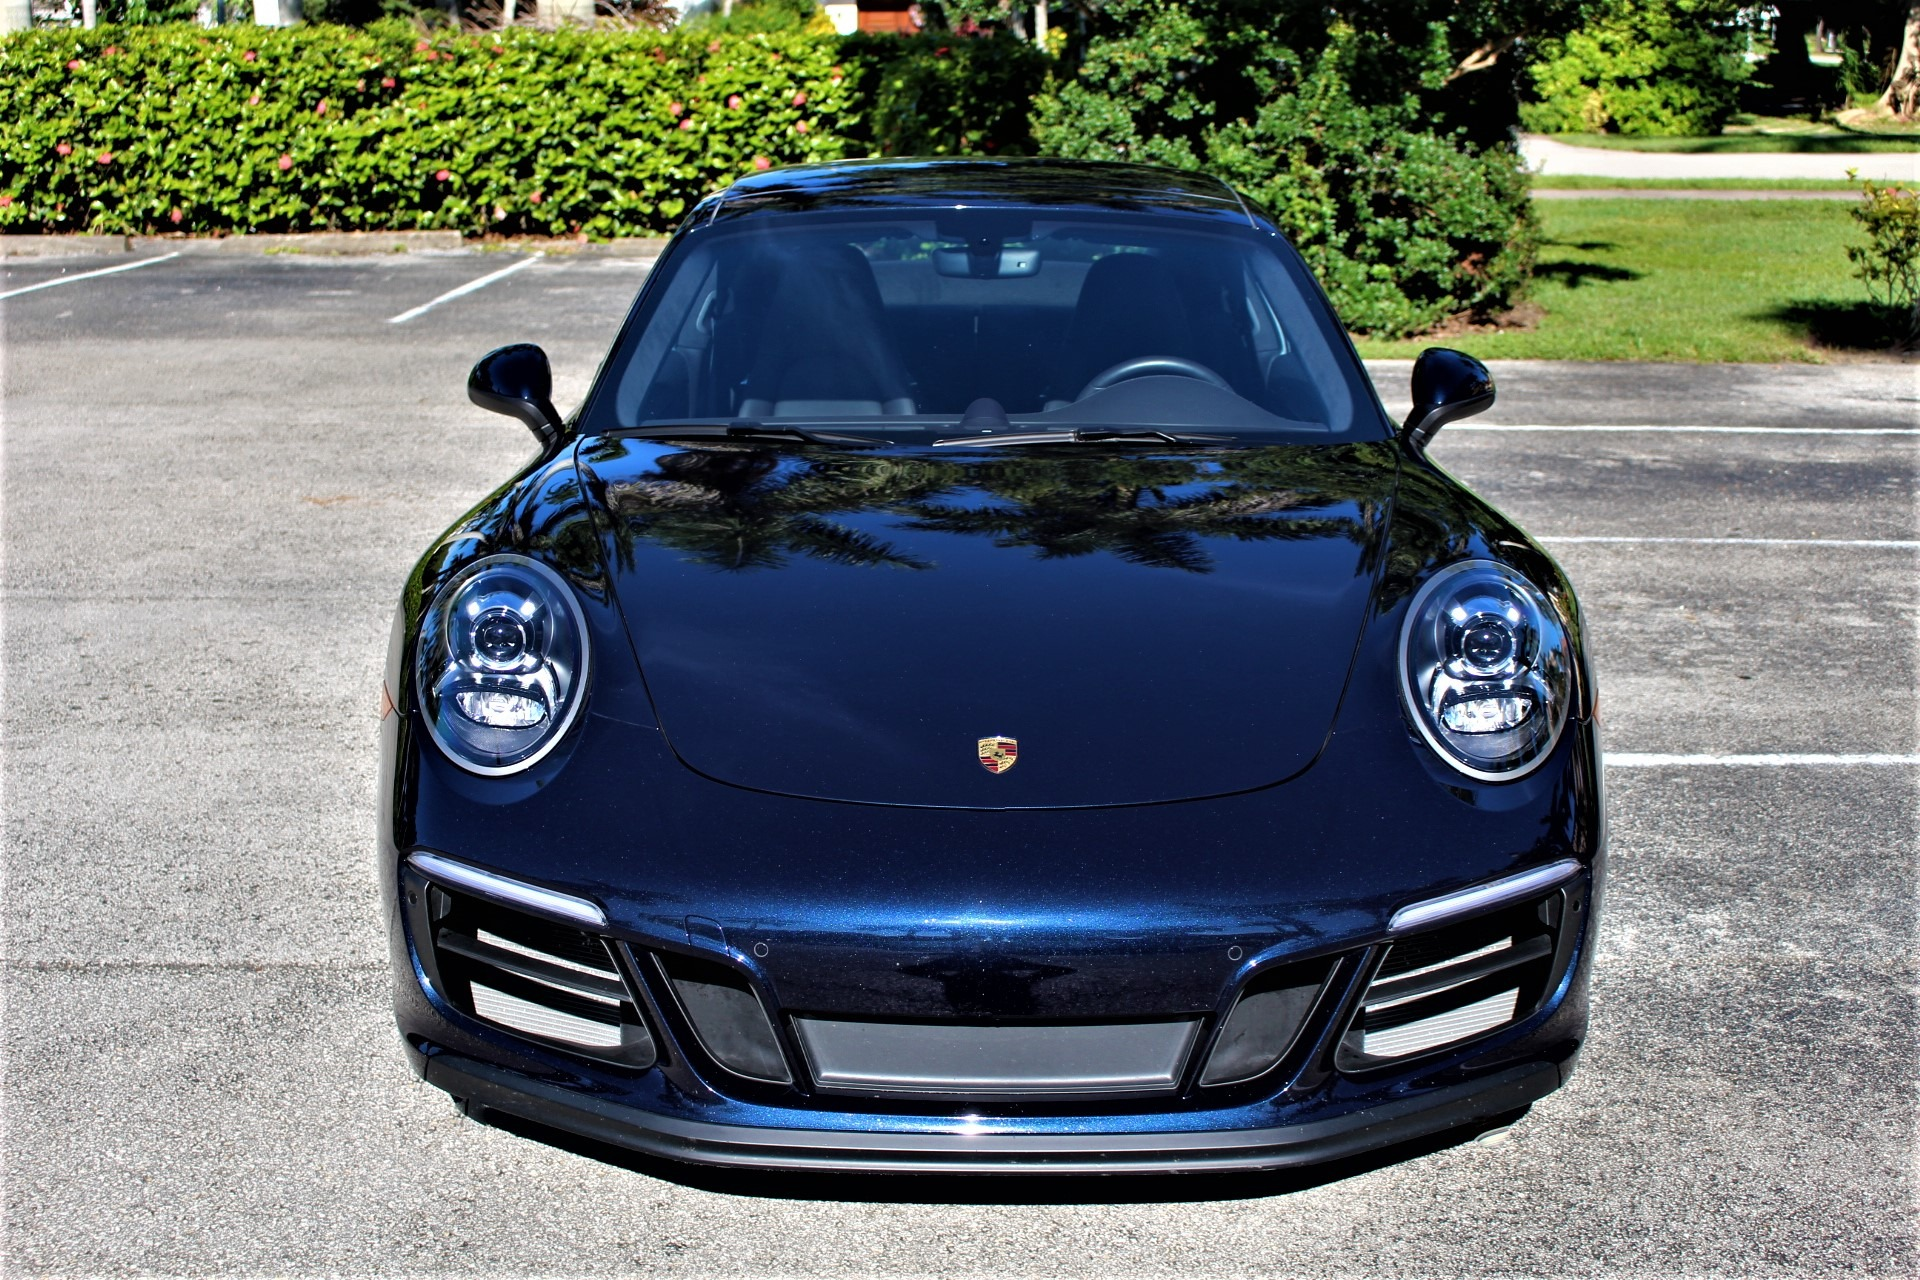 Used 2019 Porsche 911 Carrera GTS for sale Sold at The Gables Sports Cars in Miami FL 33146 3